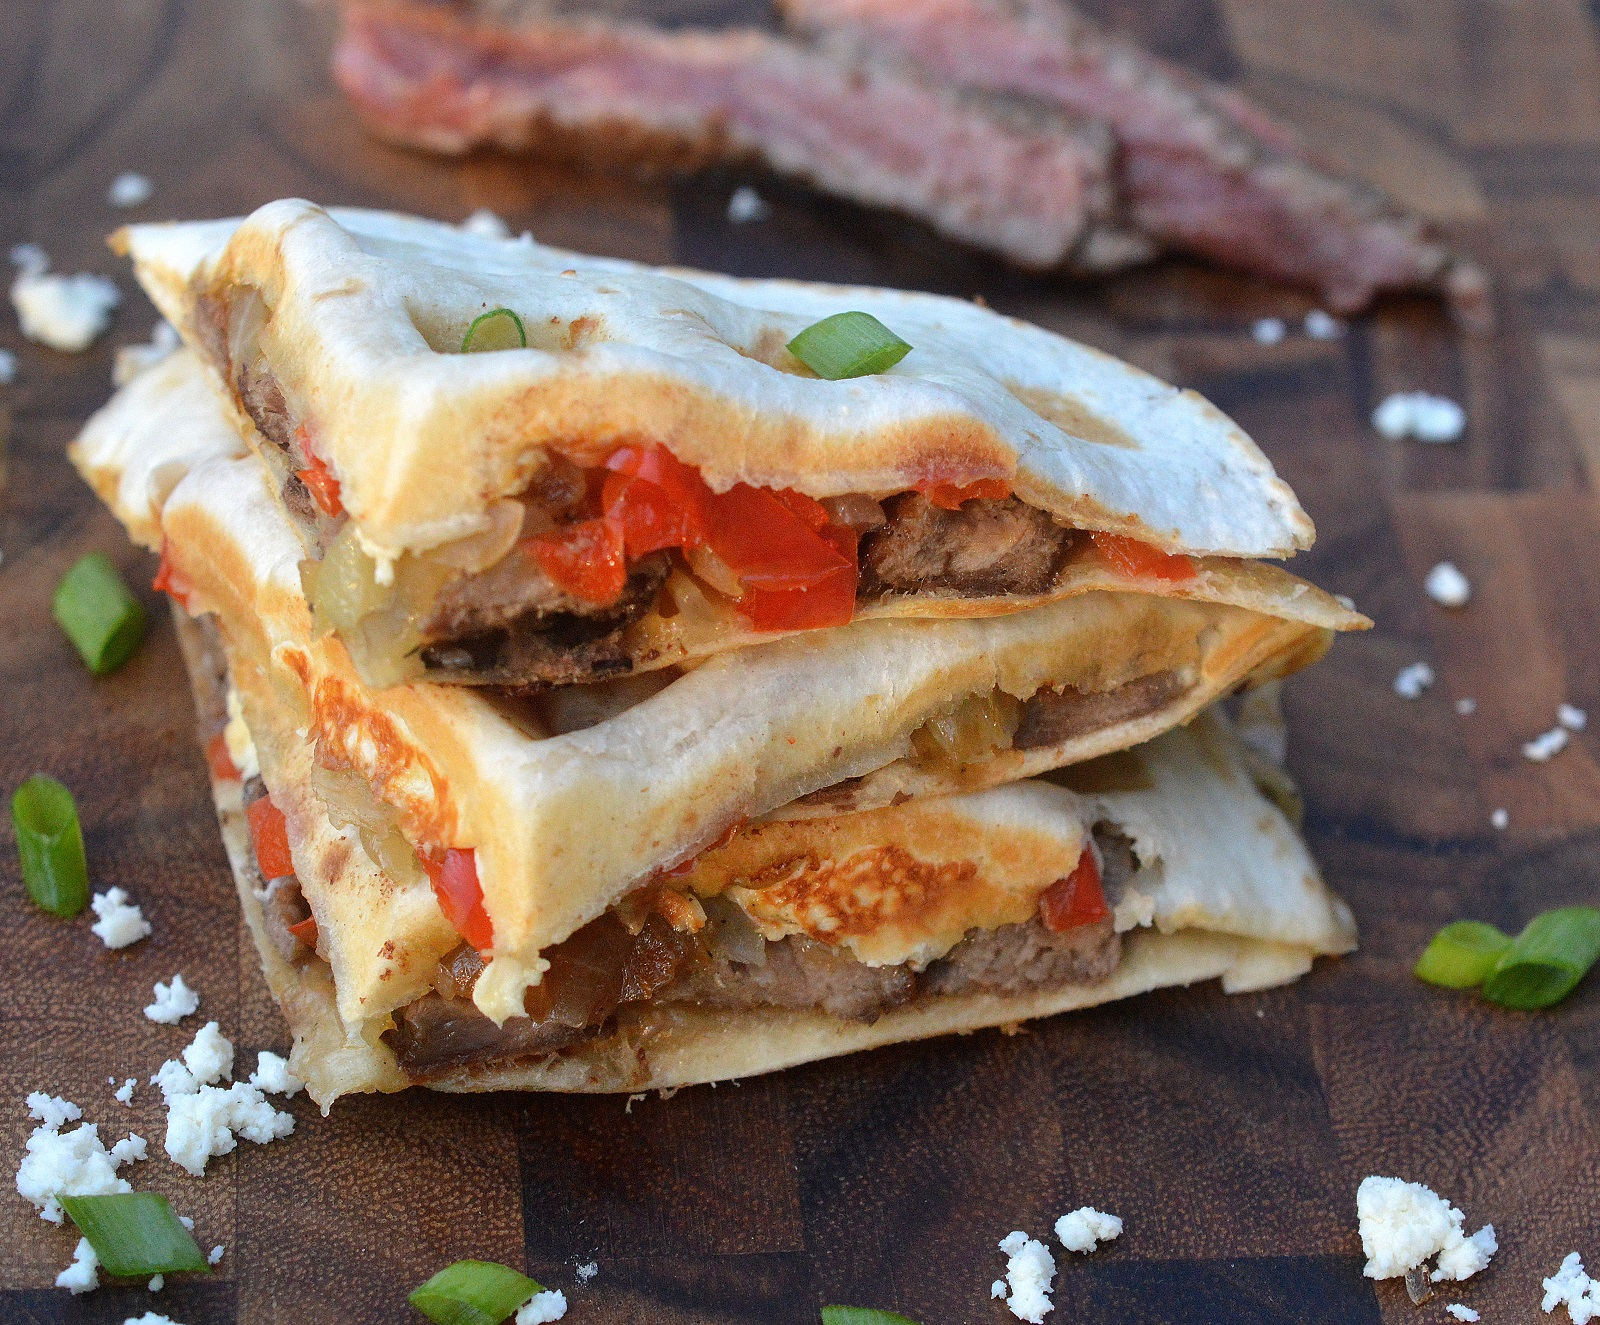 How to Make Steak Quesadillas in Your Waffle Maker its so easy and so delicious! No flipping required!